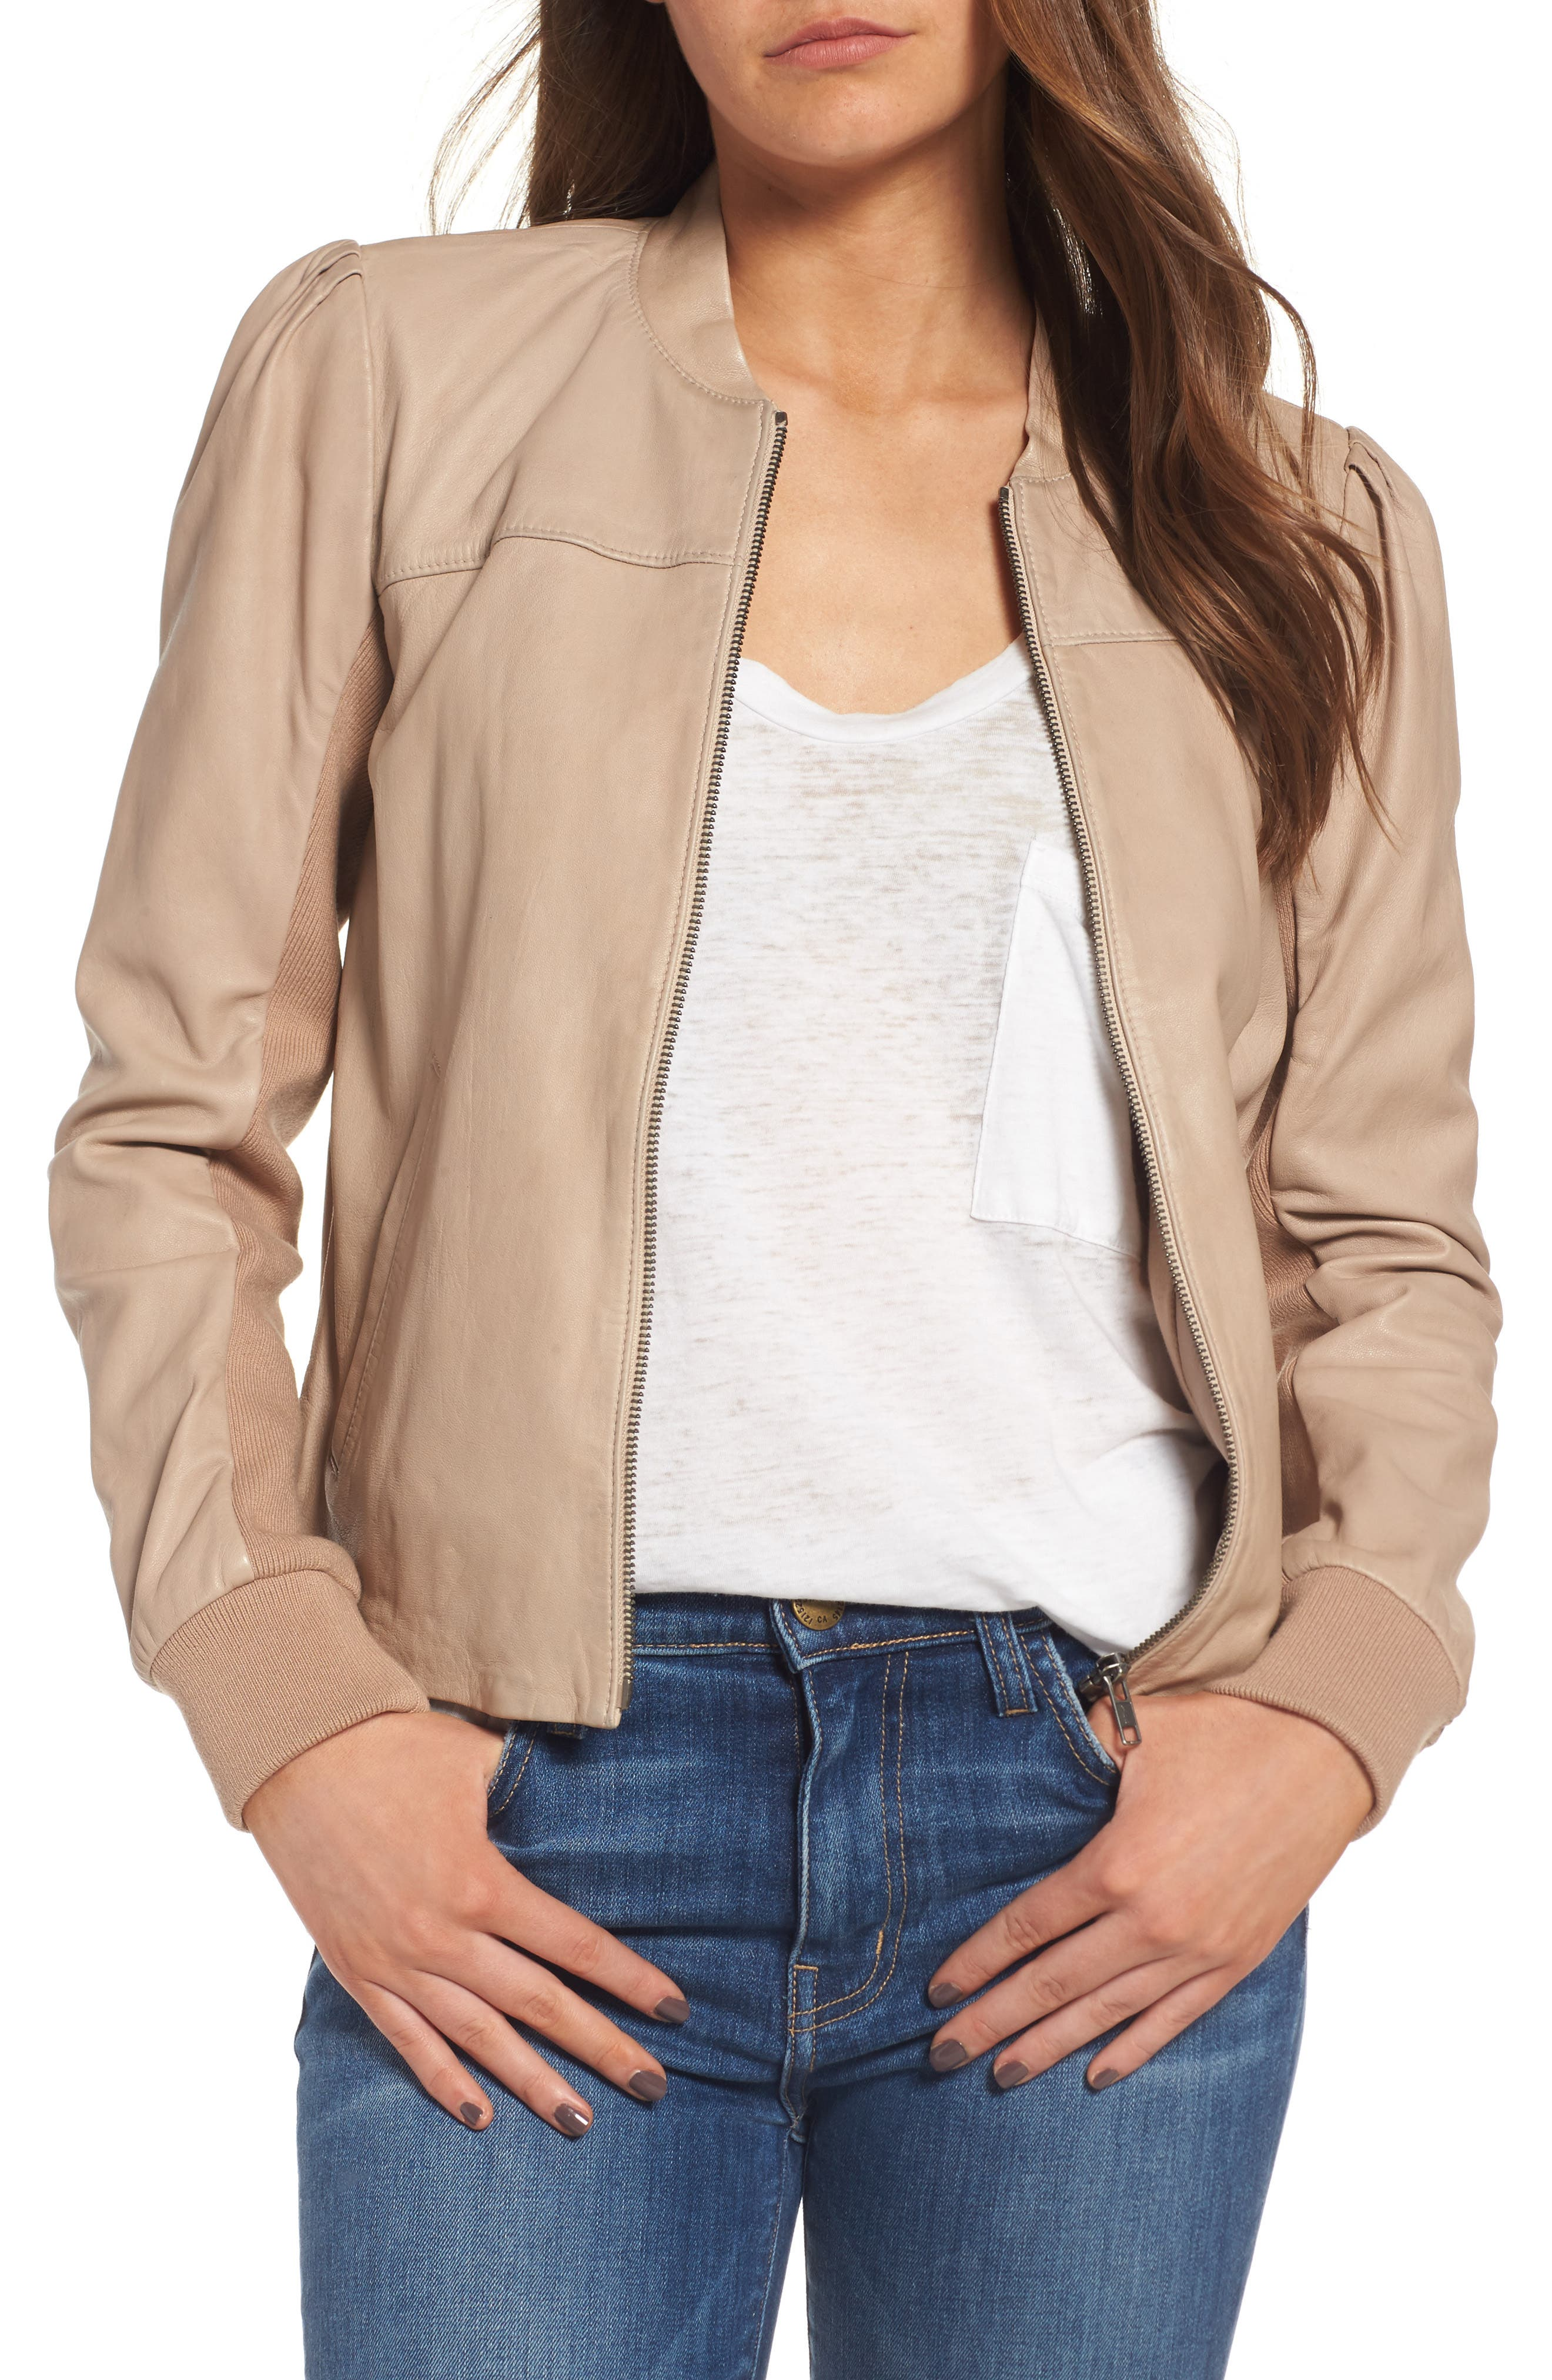 Hinge Shrunken Leather Bomber Jacket